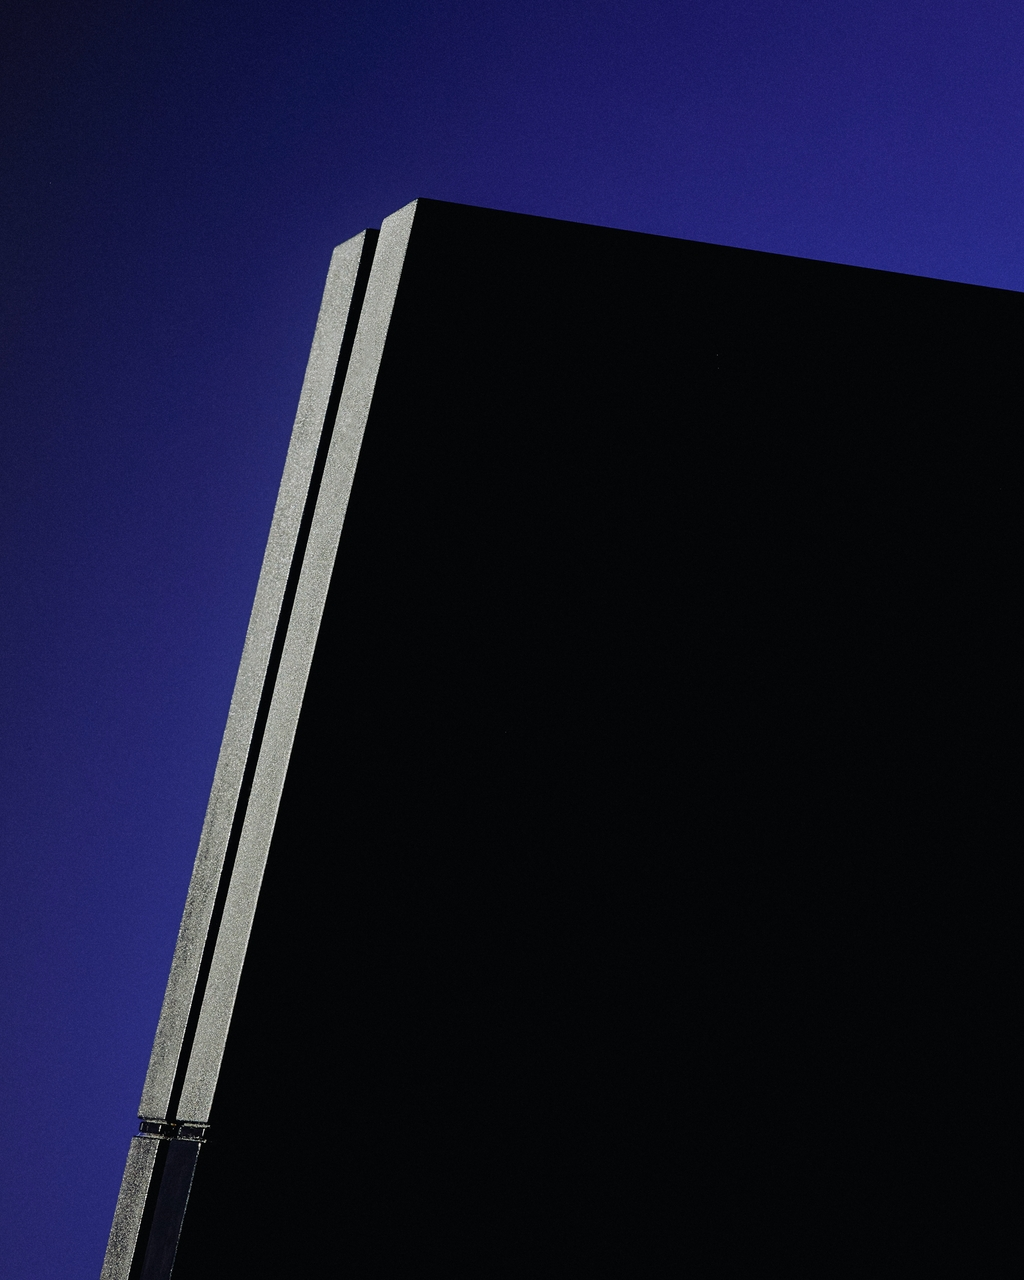 Shot of a hard drive with a dark blue backdrop.